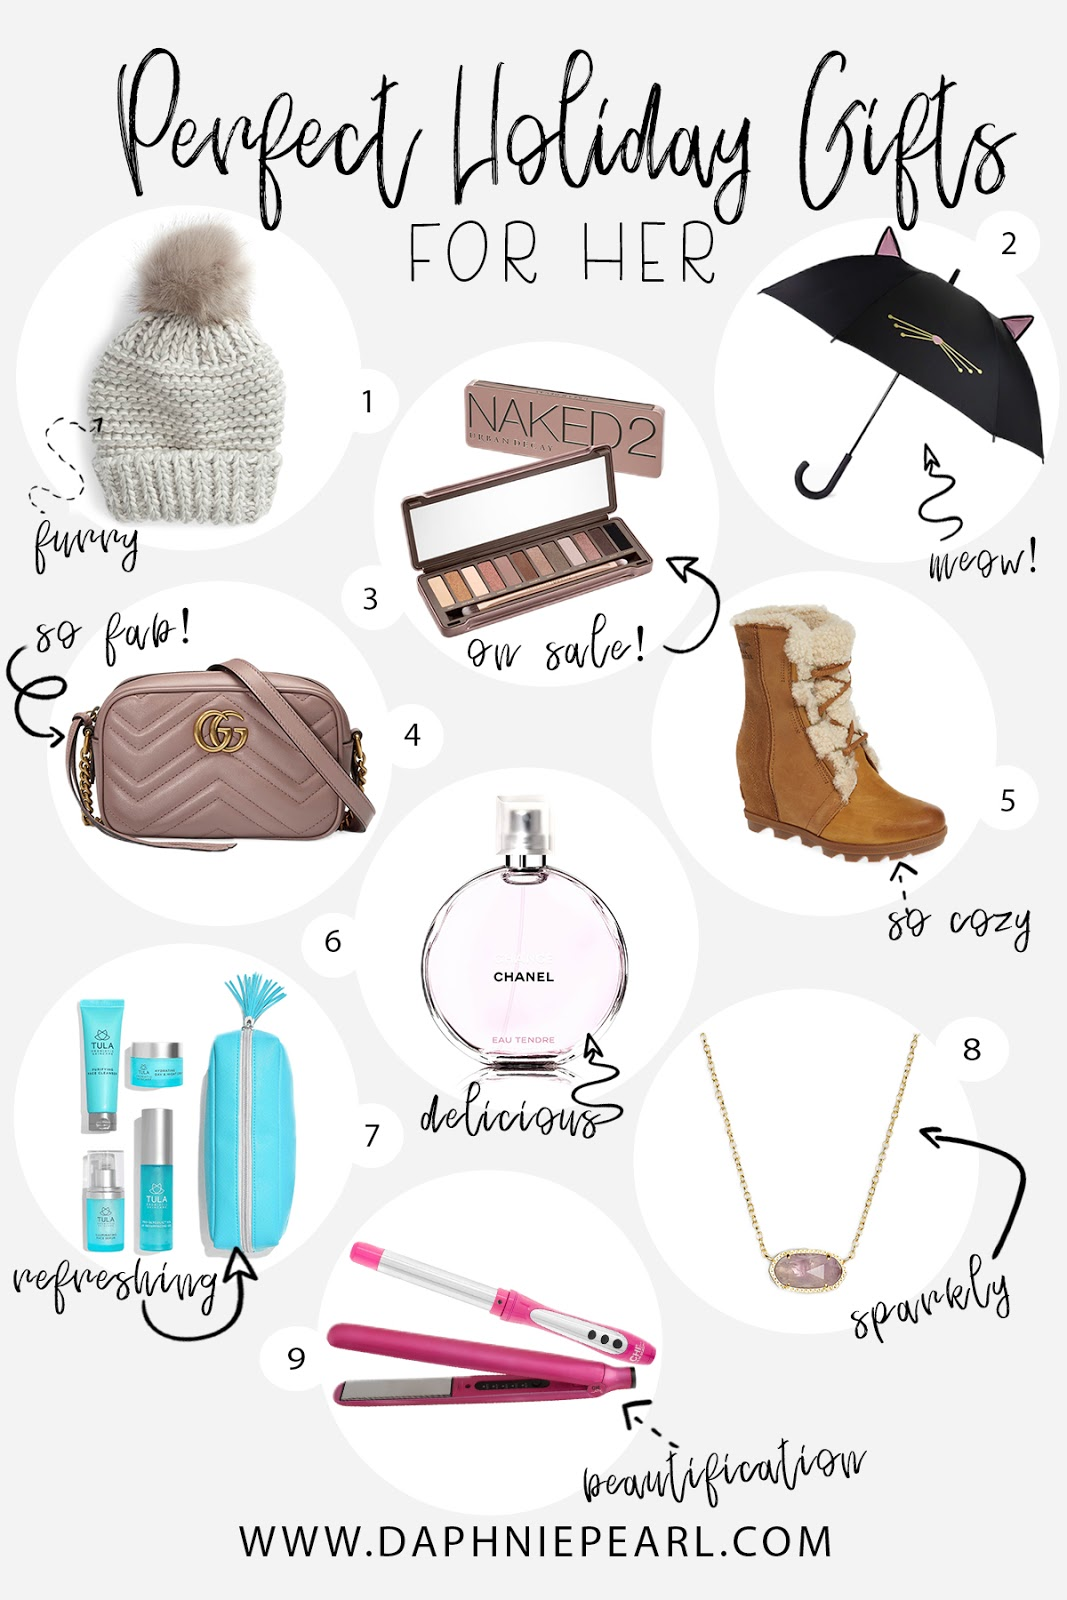 Holiday Gift Guide for Her  - Christmas Gift Ideas Holiday Shopping Present Best Unique Mom Aunt Grandma Sister Daughter Womens Girls Free People Urban Decay Naked 2 Kate Spade Umbrella Gucci Bag Sorel Boots Booties Chanel Perfume Tula Chi Kendra Scott